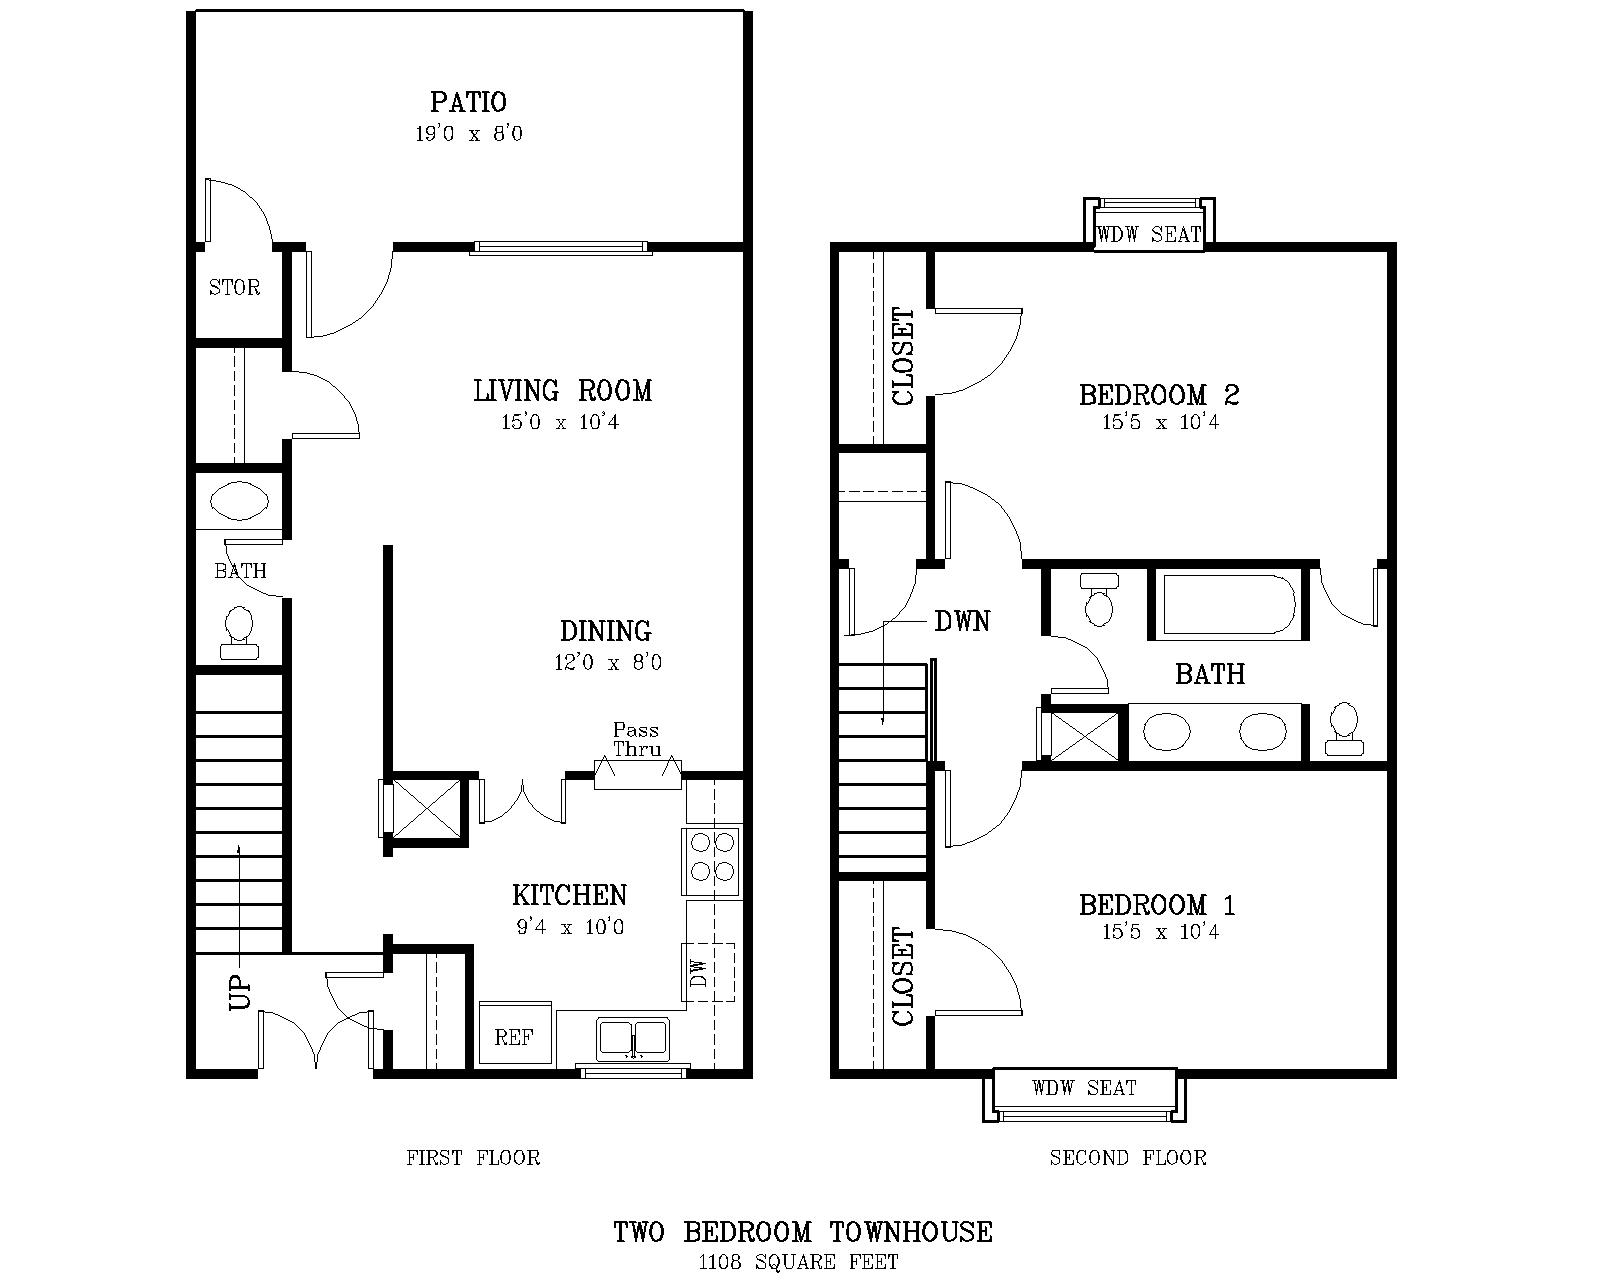 Two bedroom townhouse plans 28 images 2 story home Two bedroom townhouse plans